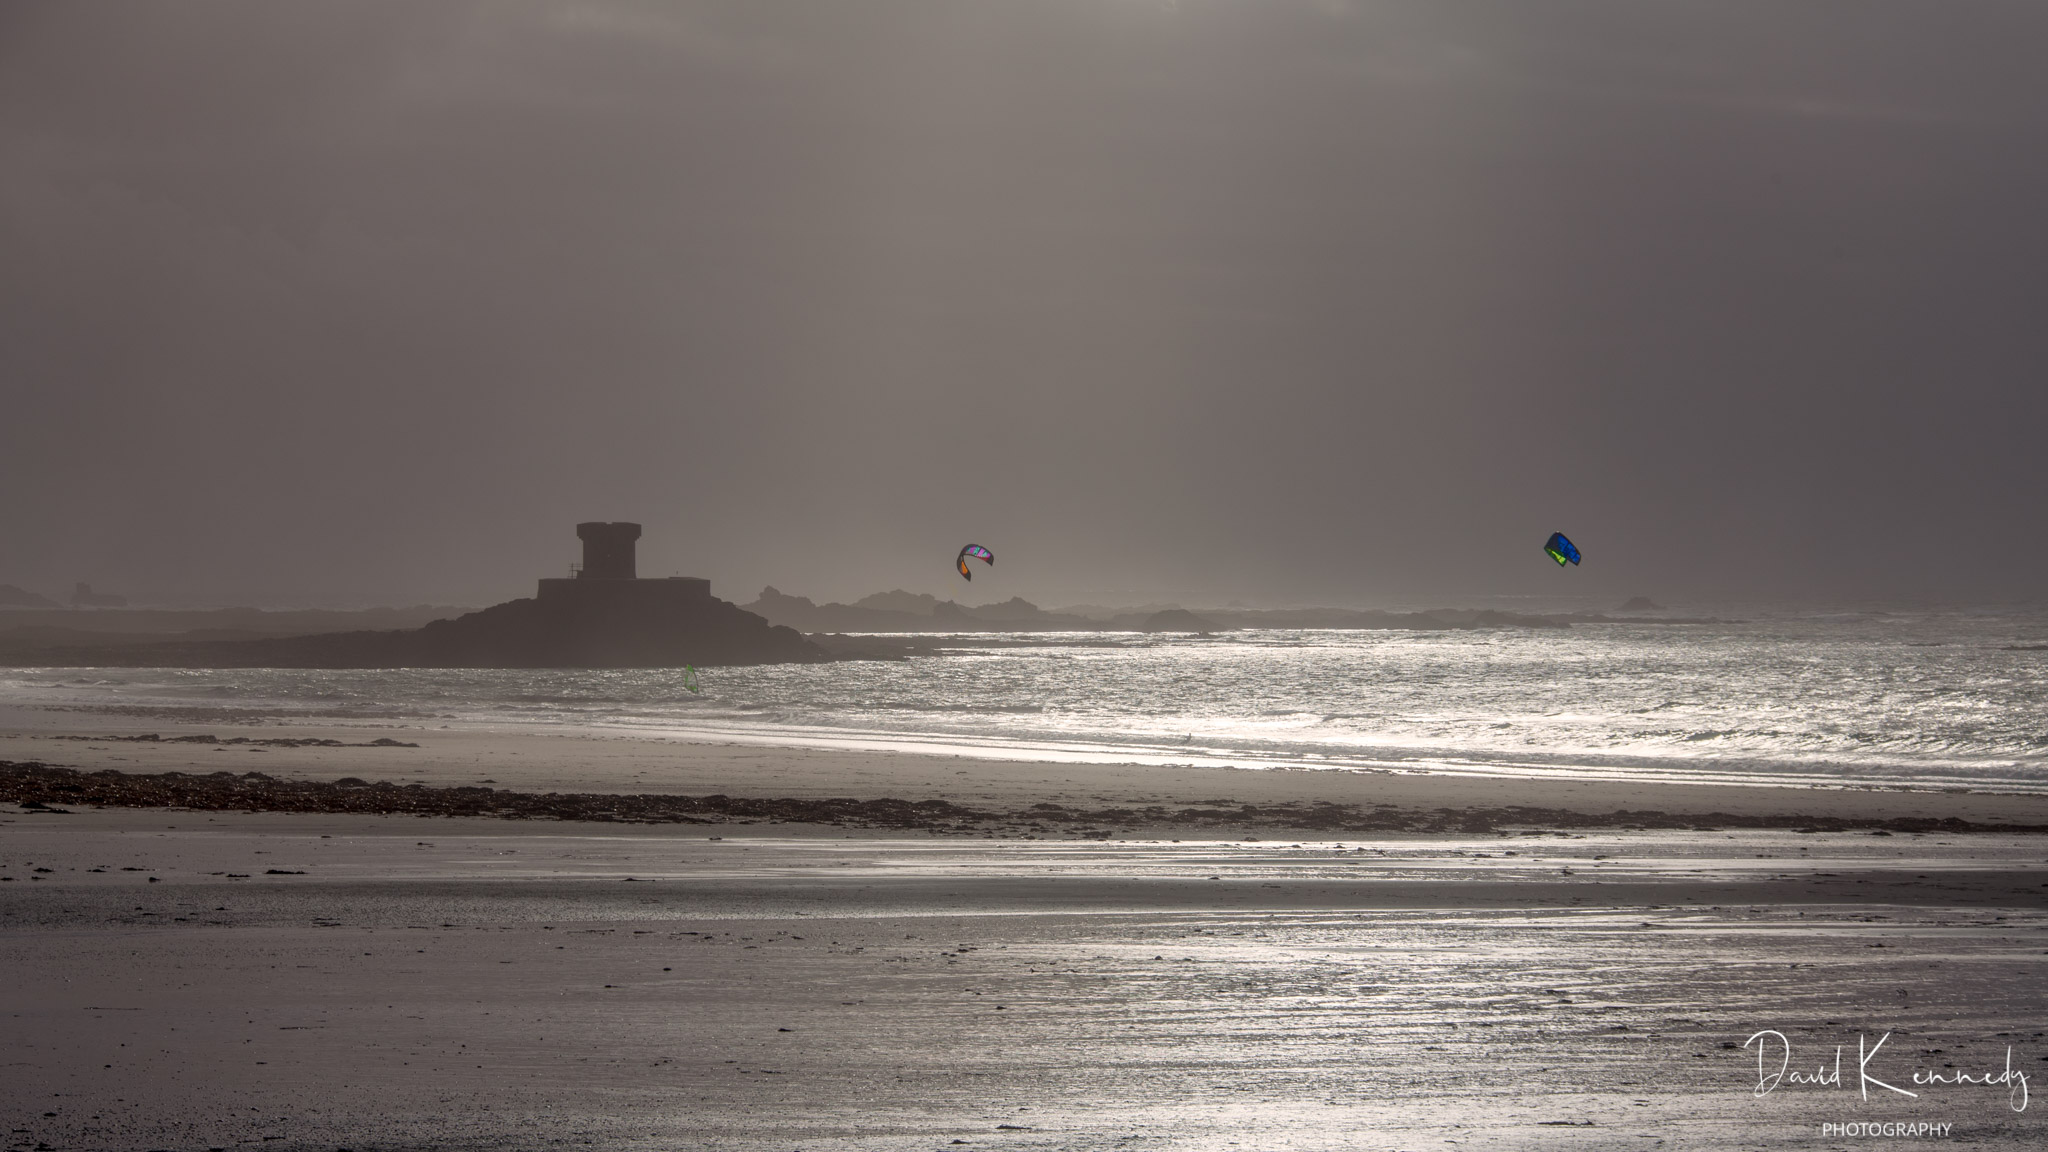 A view over the sea towards a Napoleonic era defence tower, with two para surfers and a windsurfer in view